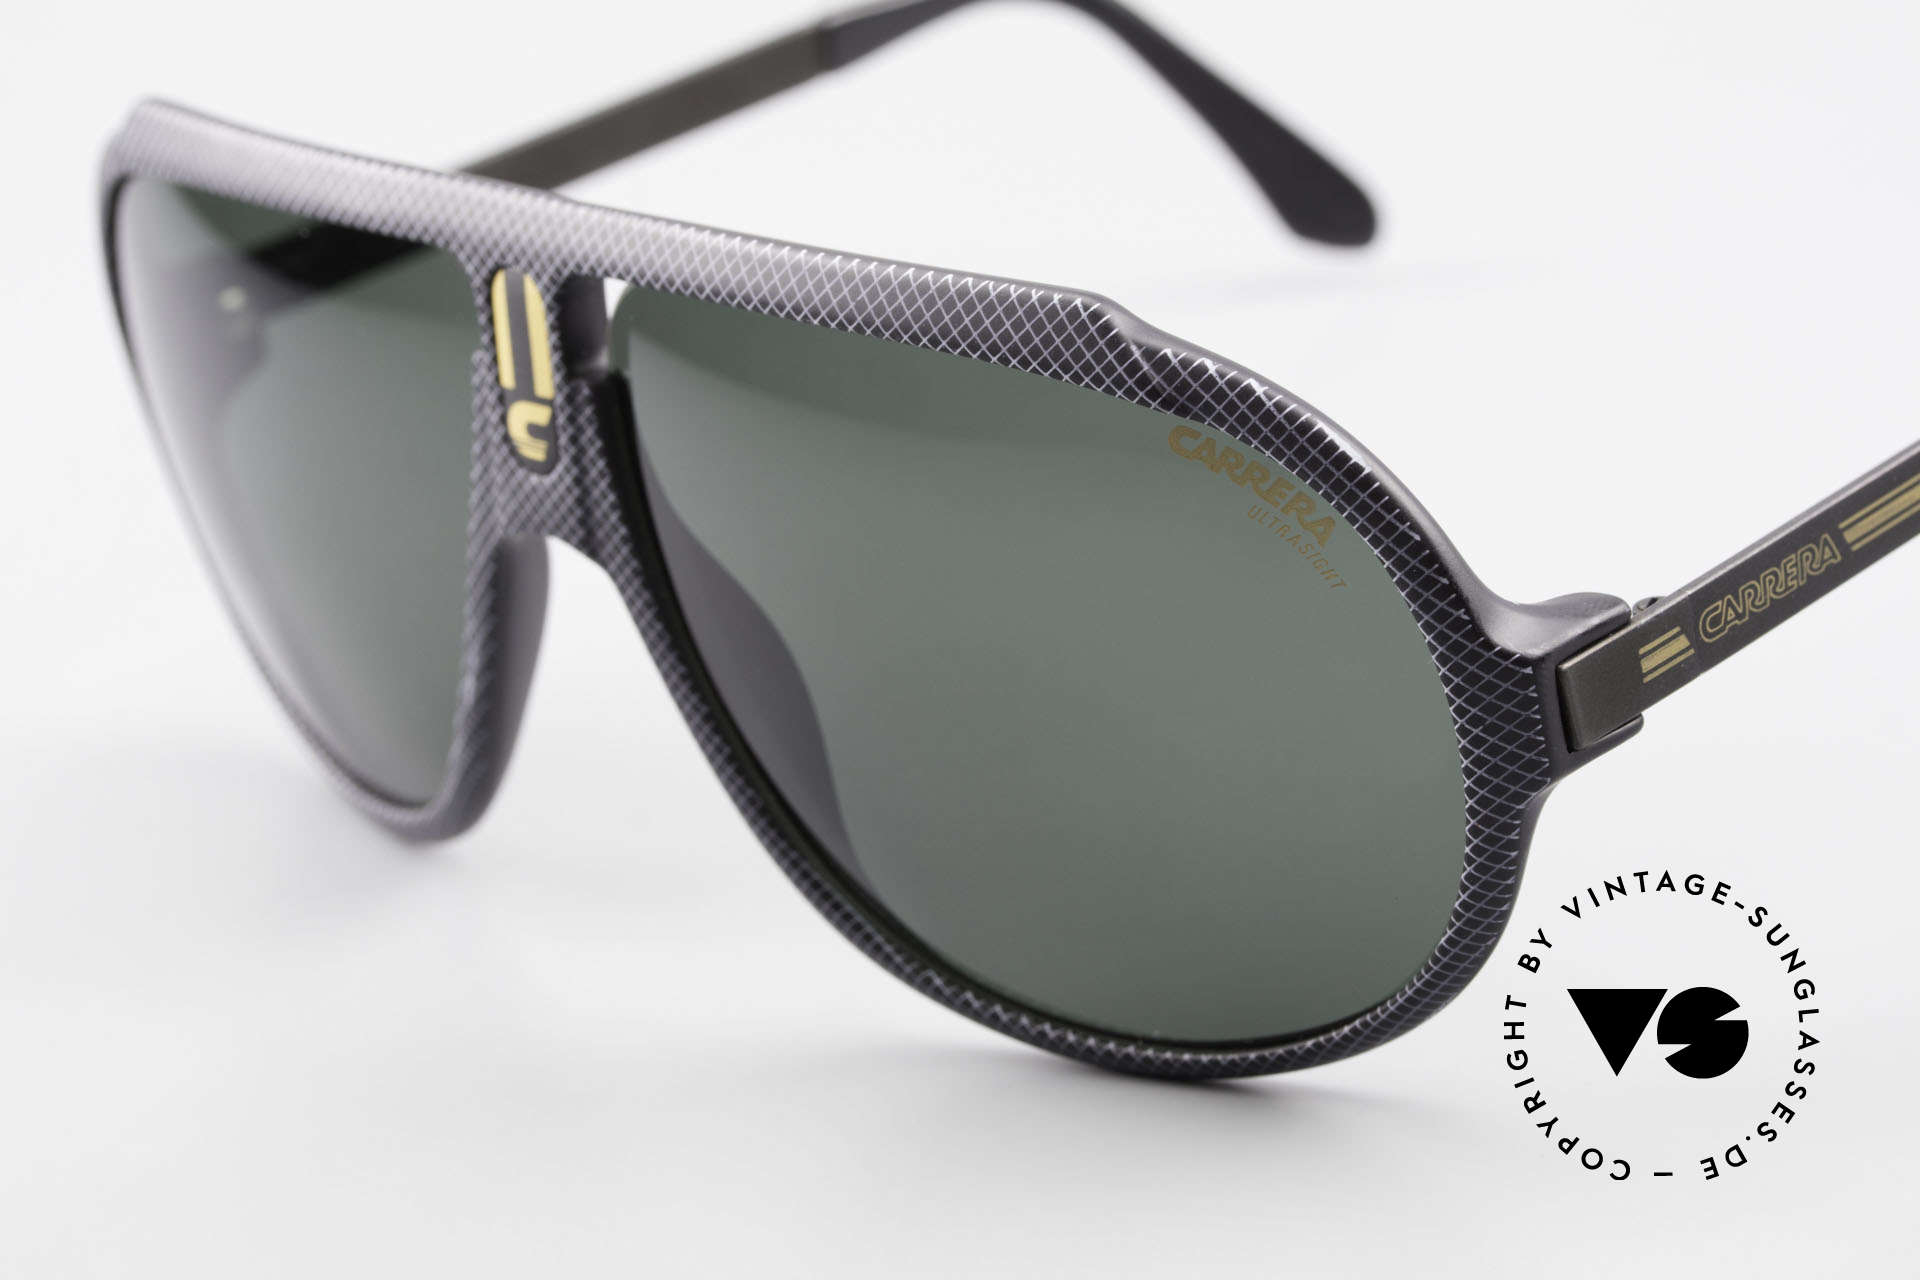 """Carrera 5512 Iconic 80's Shades Miami Vice, extraordinary frame pattern with """"lattice effect"""", unique, Made for Men"""